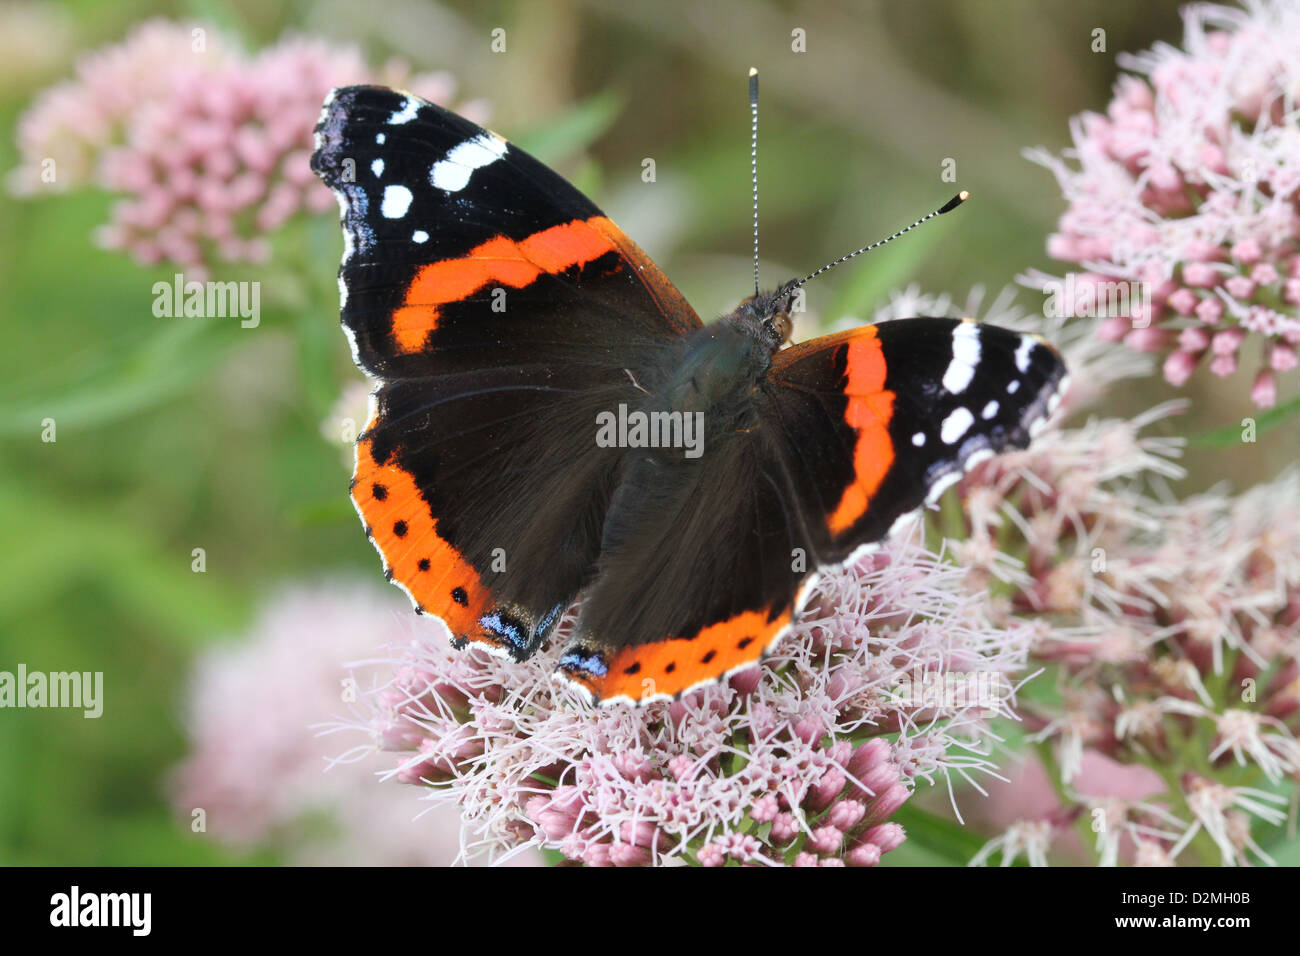 Red admiral butterfly (vanessa atalanta), dorsal view, foraging on a pink flower in summer - Stock Image